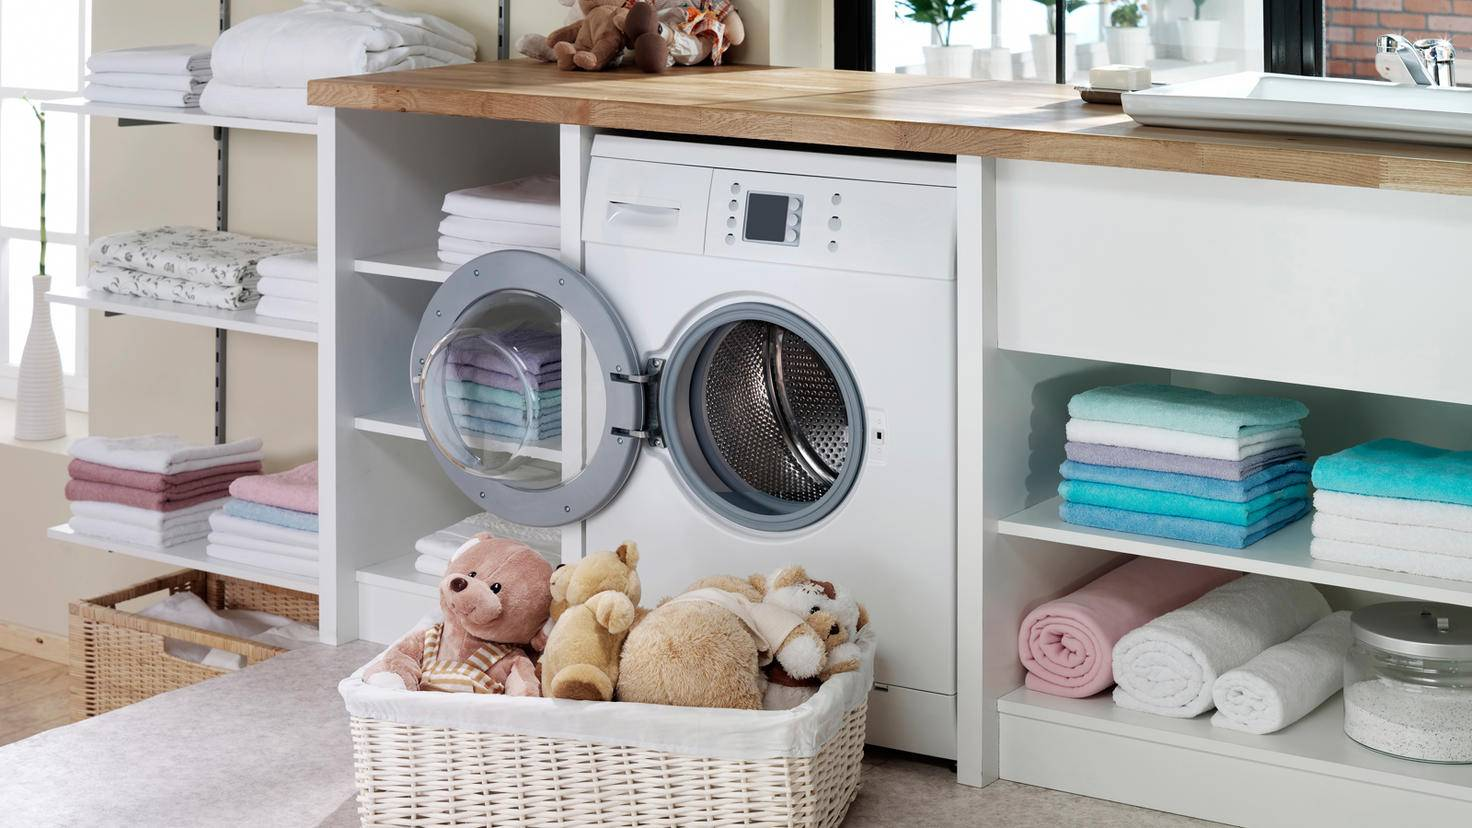 Lave-linge-porte-ouverte-nettoyage-gerenme-GettyImages-471727557